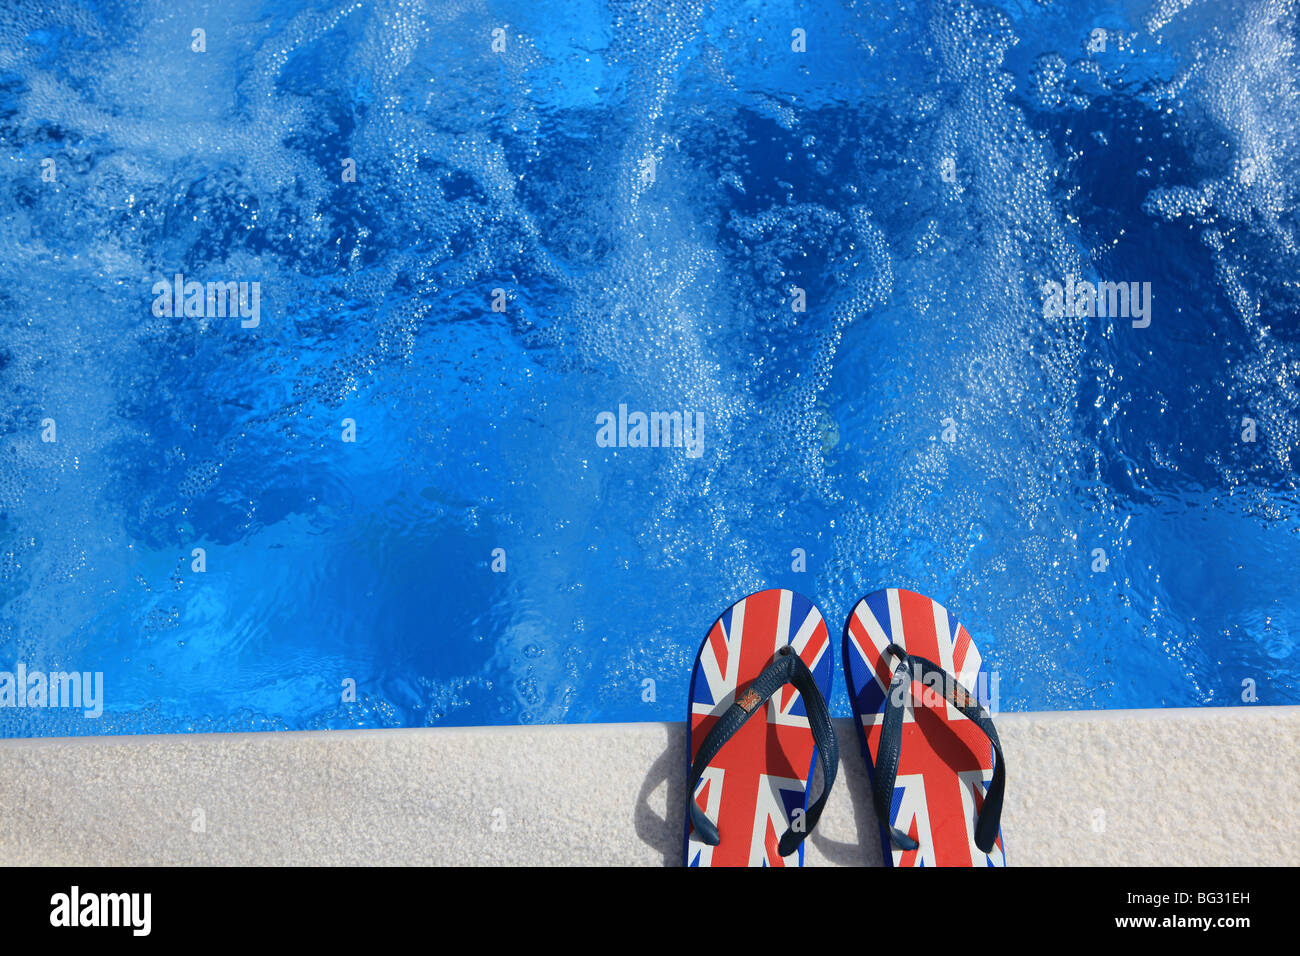 Pair of unbranded flip flops printed with the UK flag or Union Jack placed at the edga of a swimming pool whirlpool - Stock Image